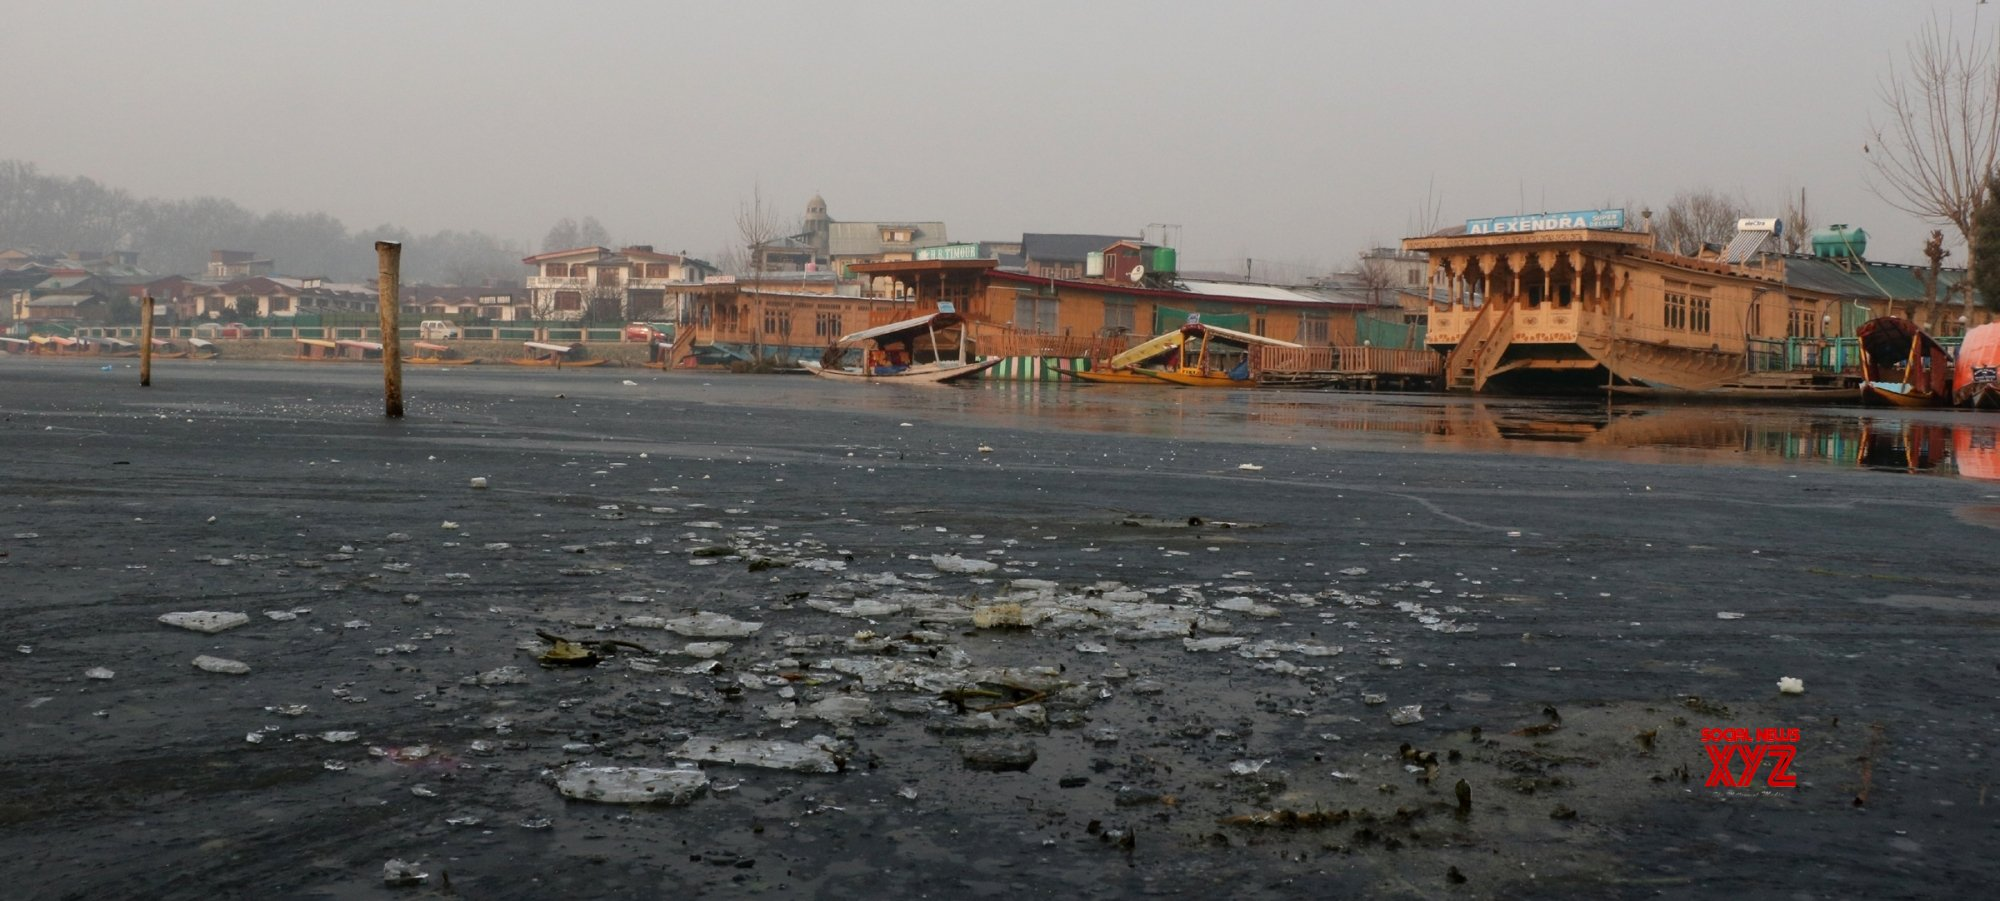 After 25 years, Srinagar records minus 8.4 degrees at night